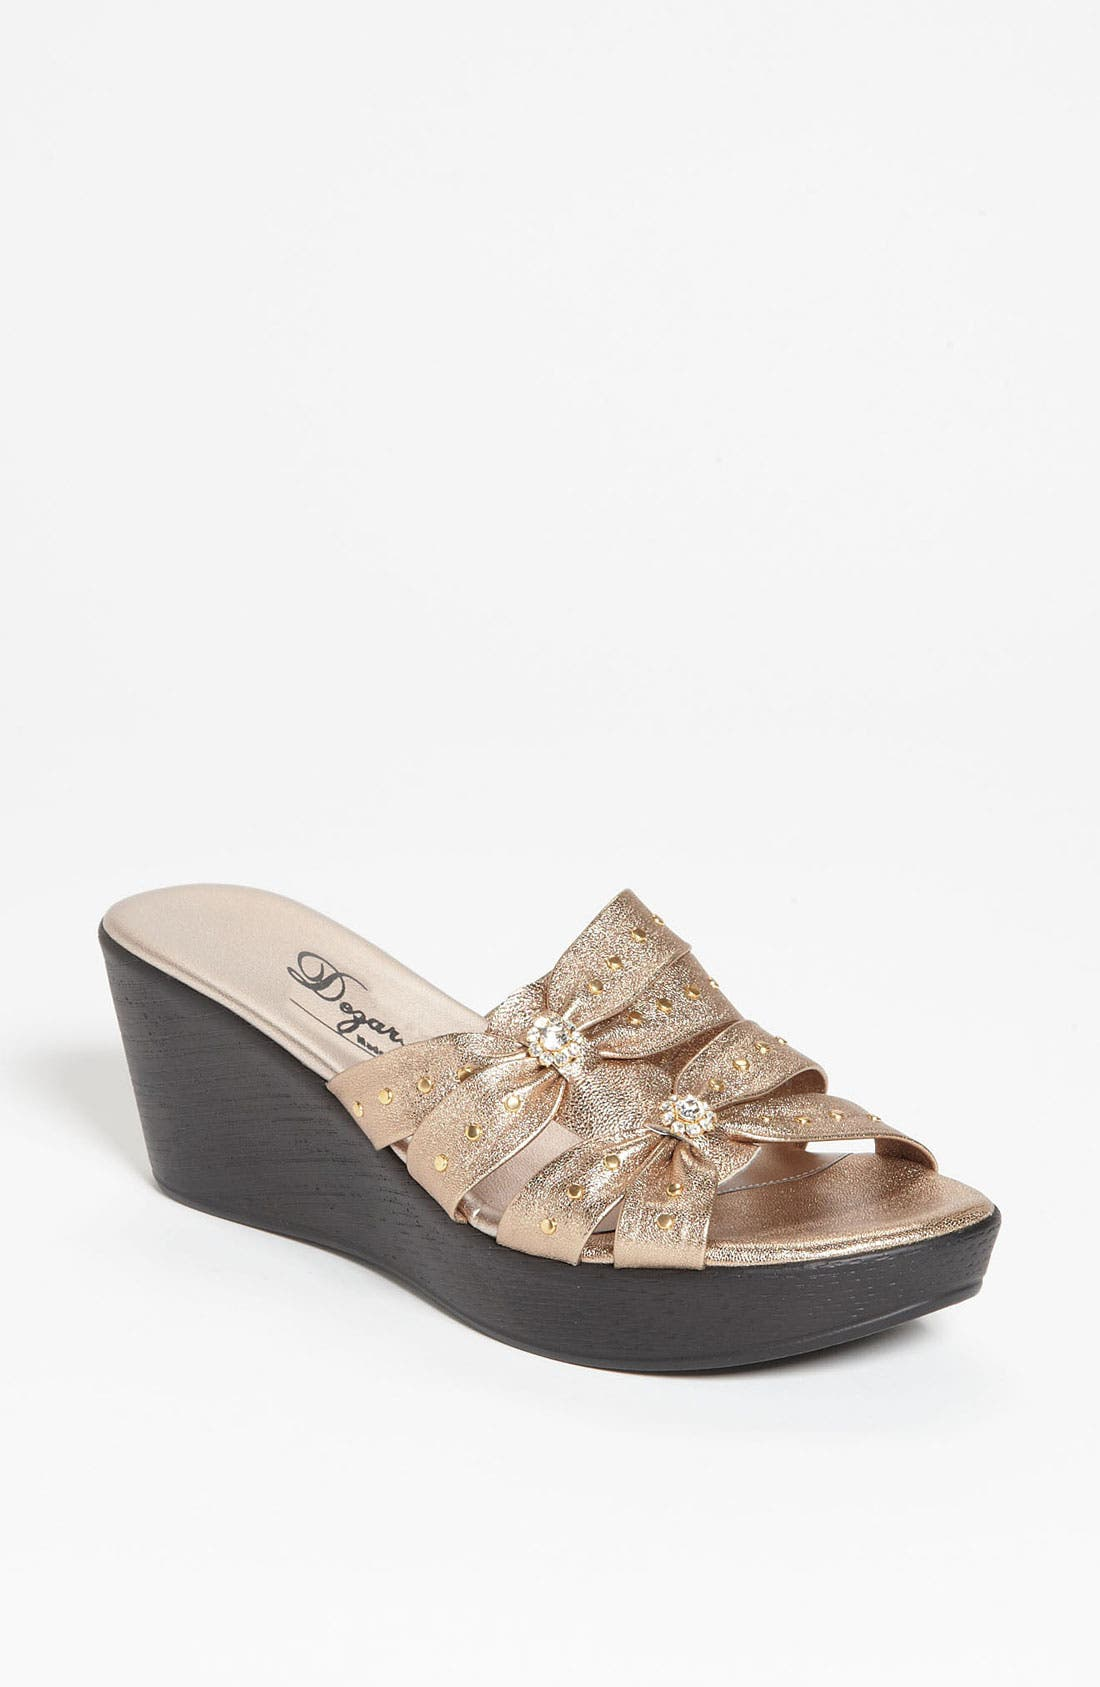 Alternate Image 1 Selected - Dezario 'Taline' Sandal (Special Purchase)